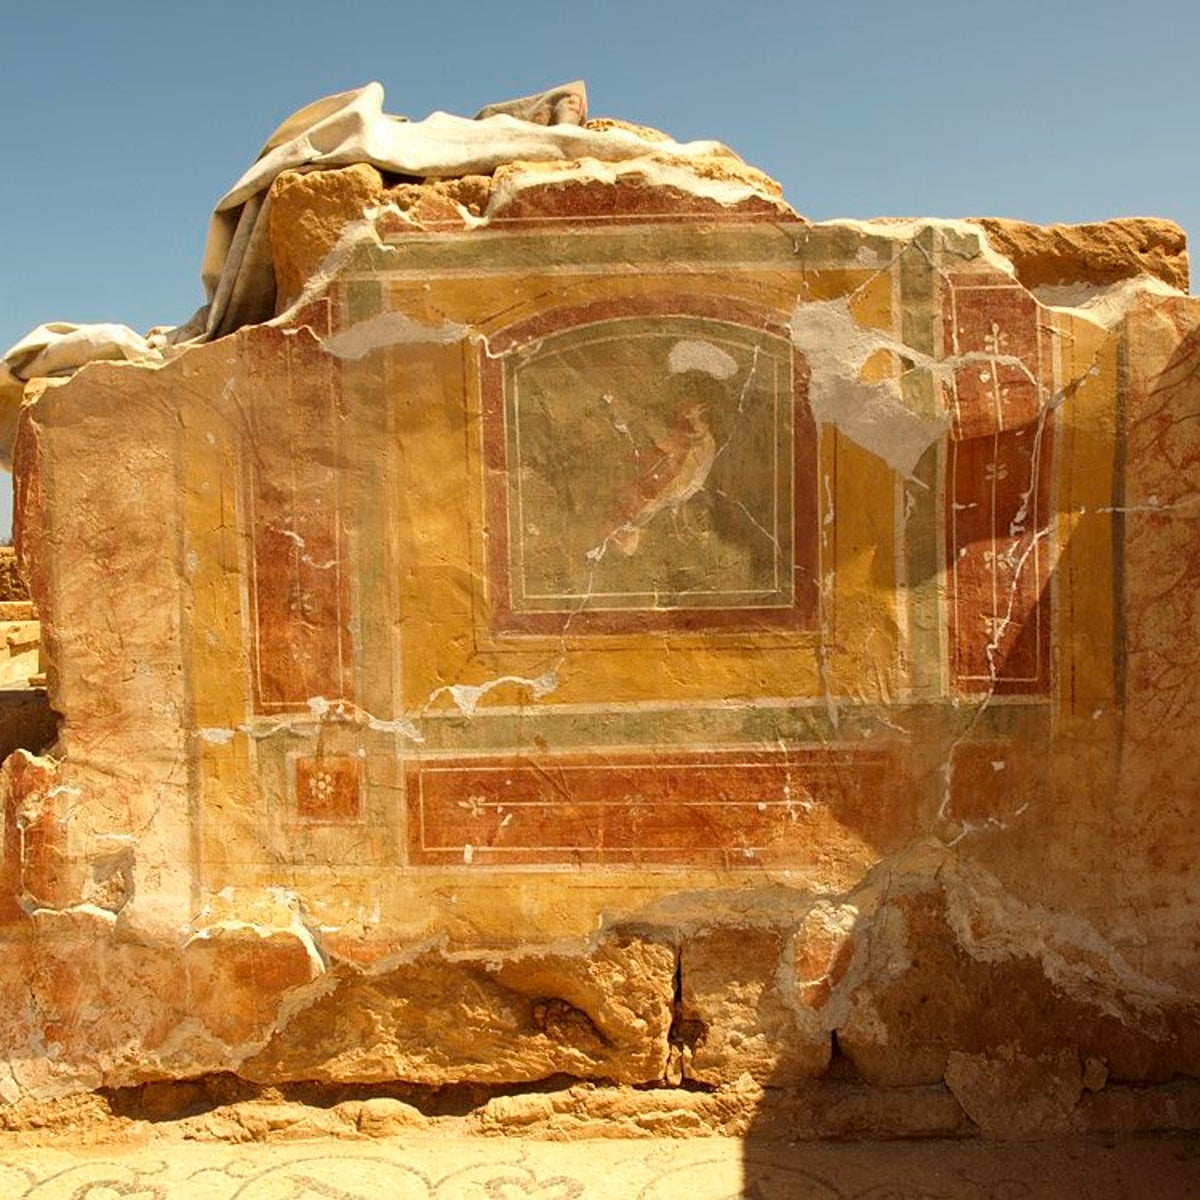 Fresco in 1,700-year-old Roman villa in Ptolemais: Photo shows ruins of plastered wall in Ptolemais, on which a picture was painted, and framed with ocher and brick-red painted rectangles. In the foreground we see the edge of an elaborate mosaic.